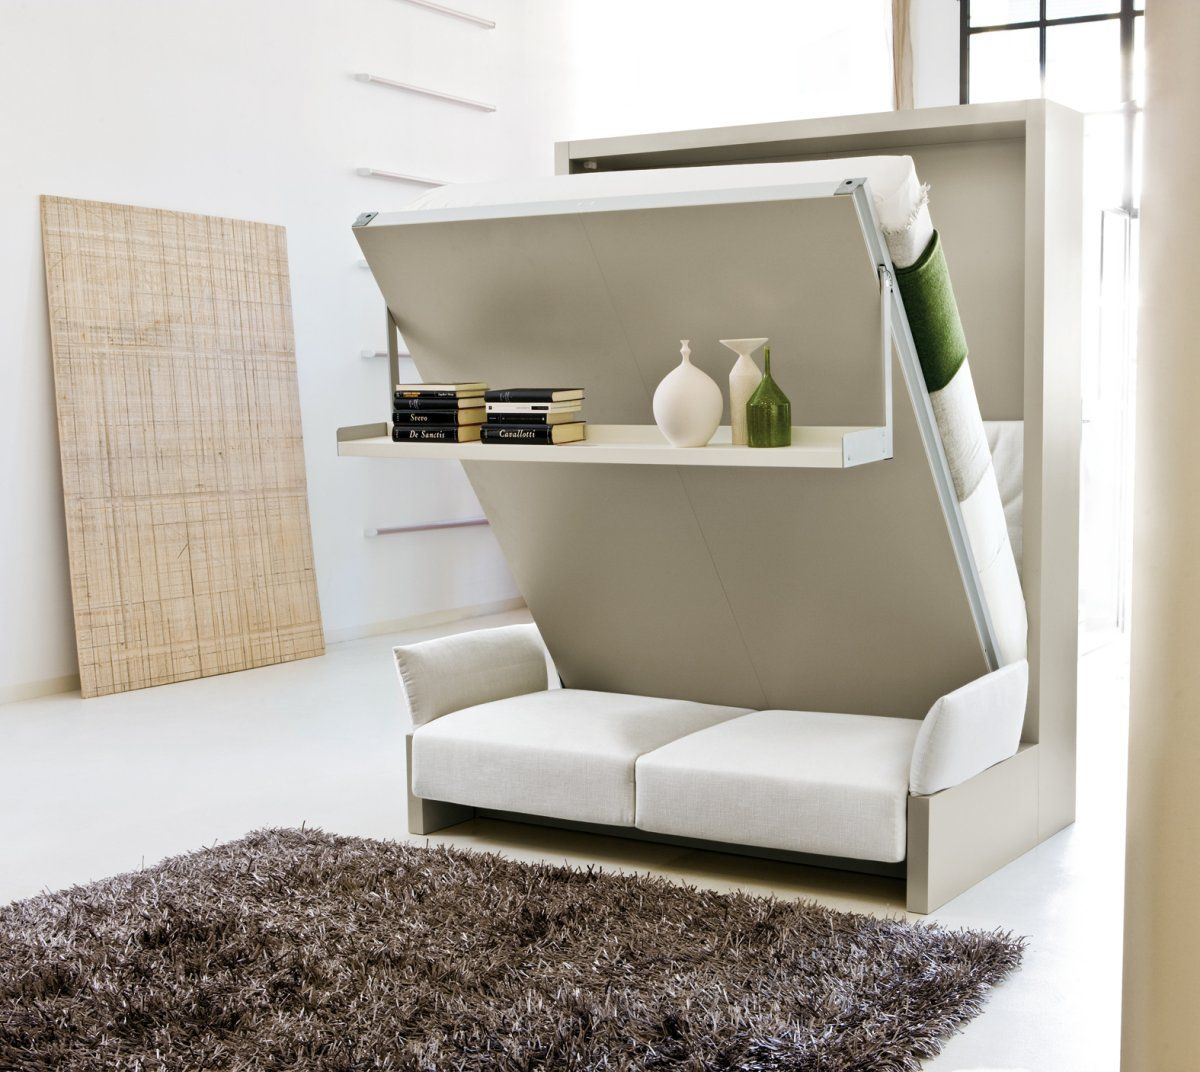 stylish-portable-compact-folding-furniture-bed-sets-spacious ...